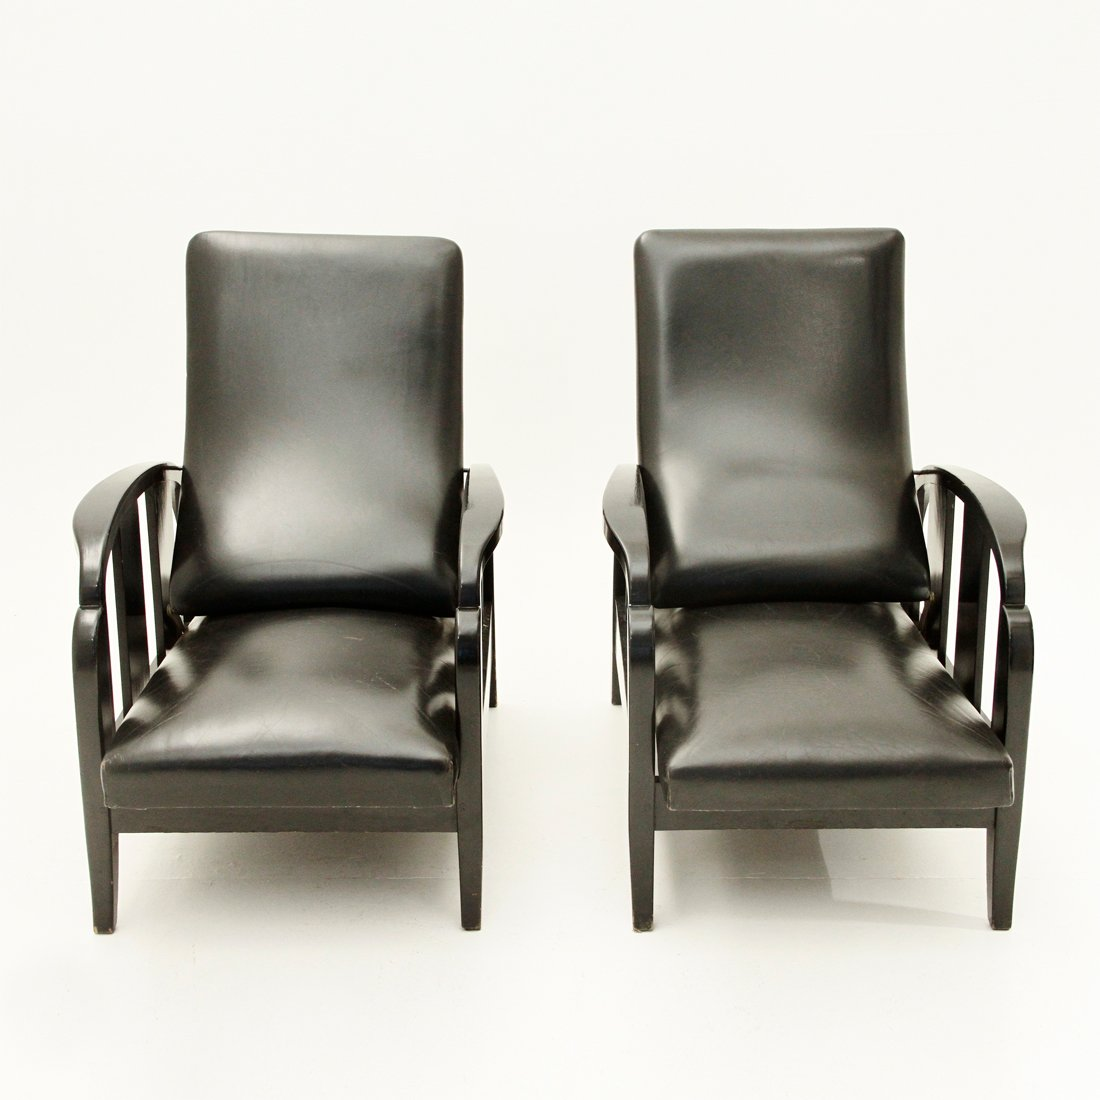 schwarze art deco leder sessel 1930er 2er set bei pamono kaufen. Black Bedroom Furniture Sets. Home Design Ideas